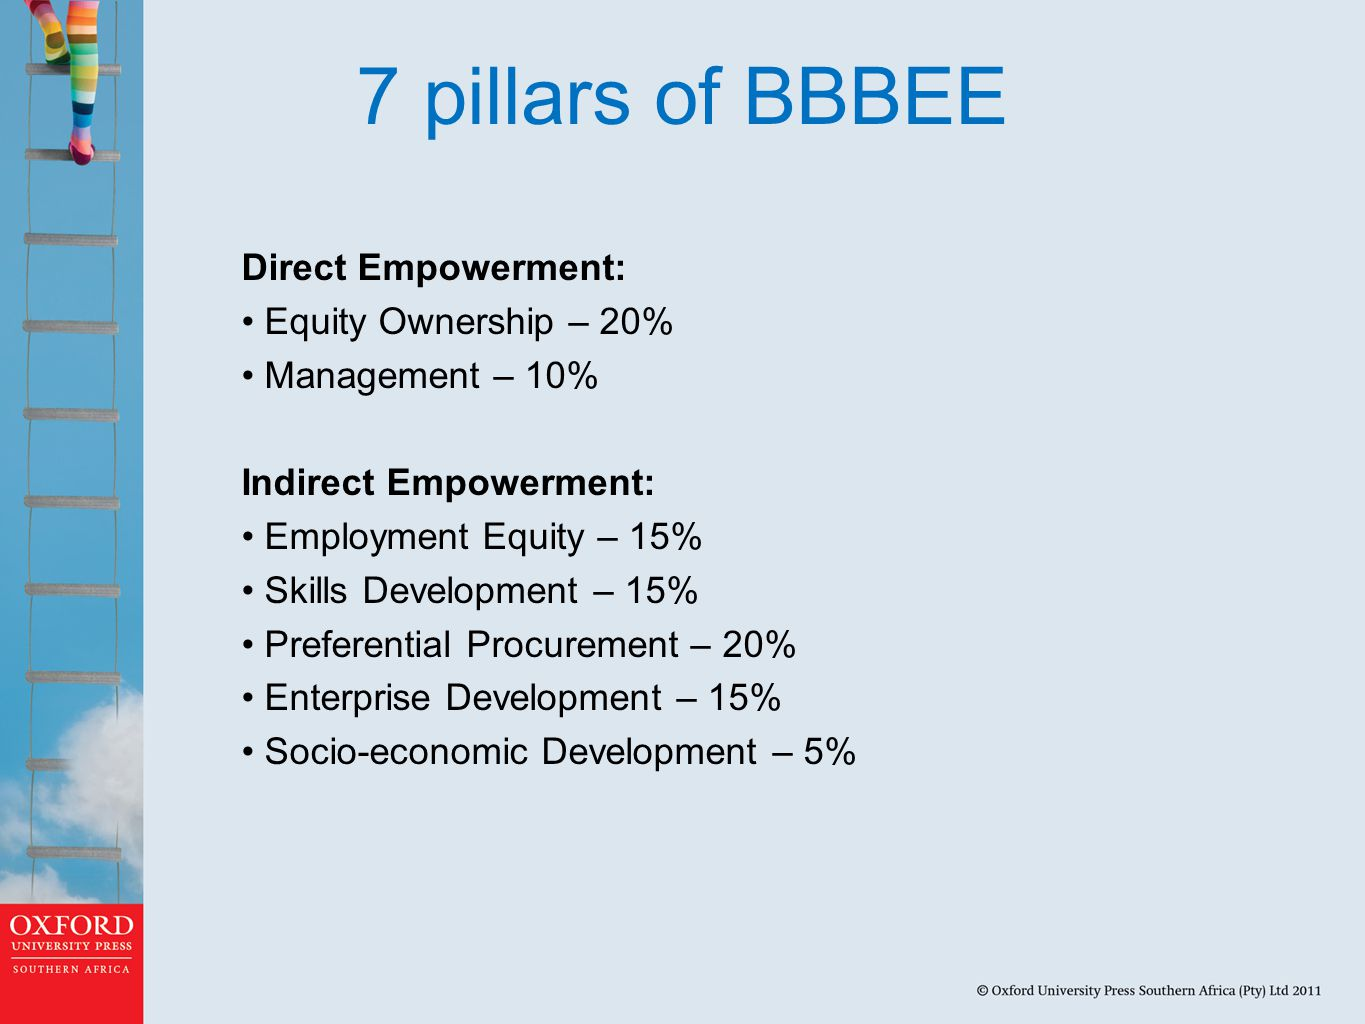 7 pillars of BBBEE Direct Empowerment: Equity Ownership – 20%